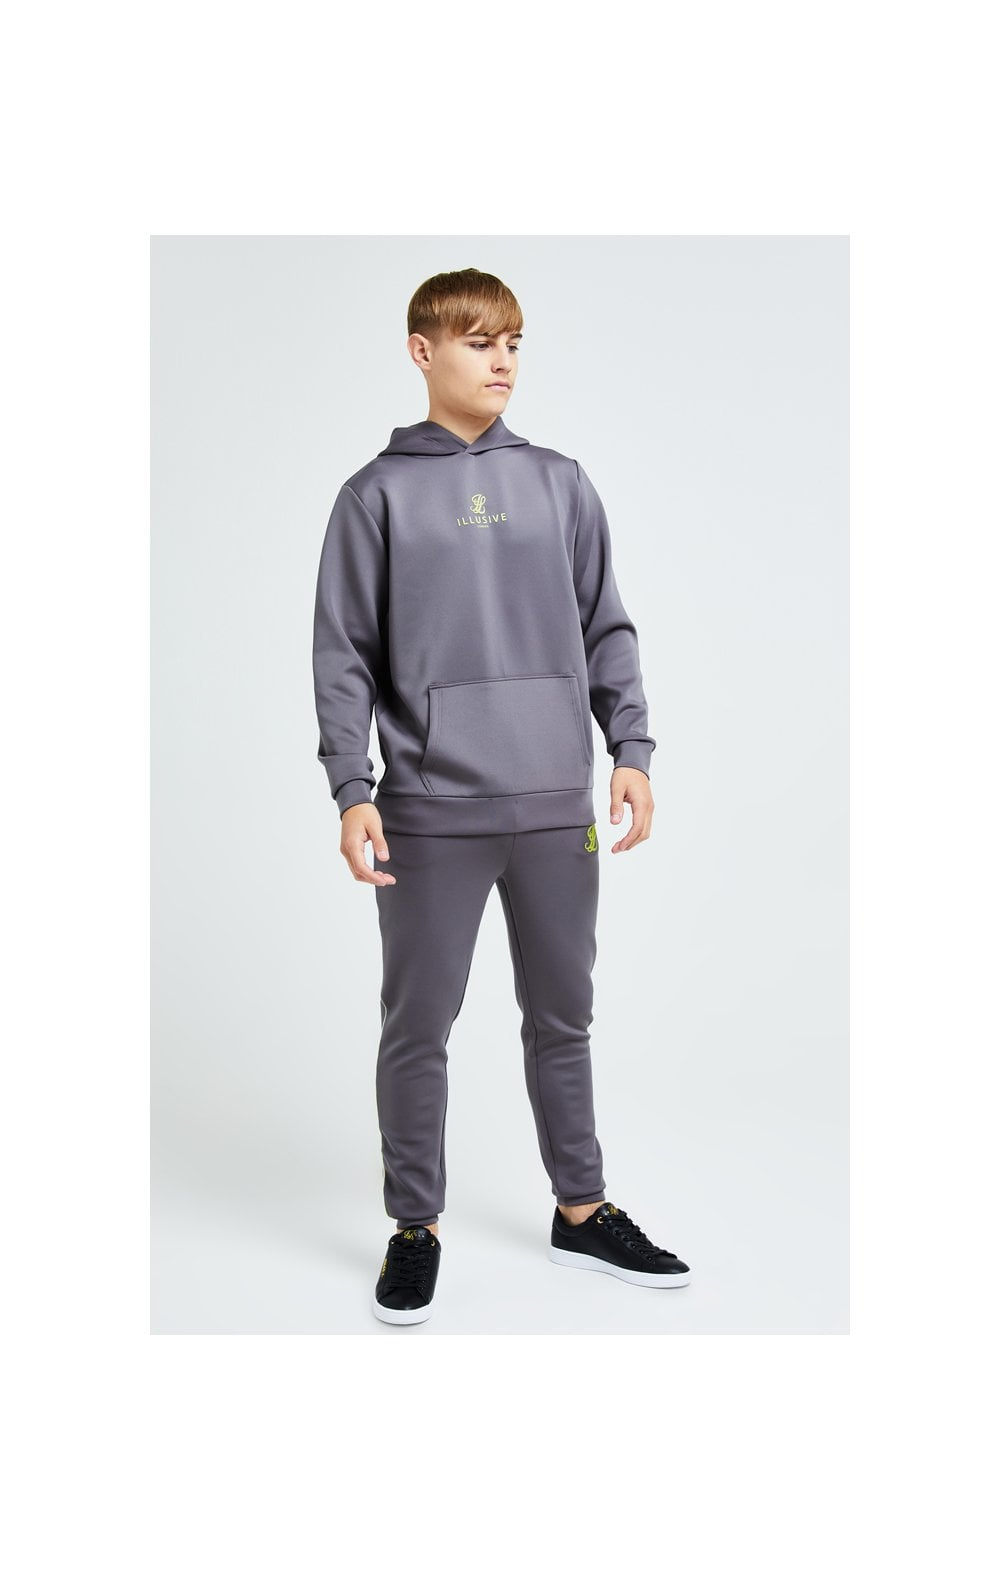 Illusive London Blaze Overhead Hoodie - Dark Grey & Lime (3)